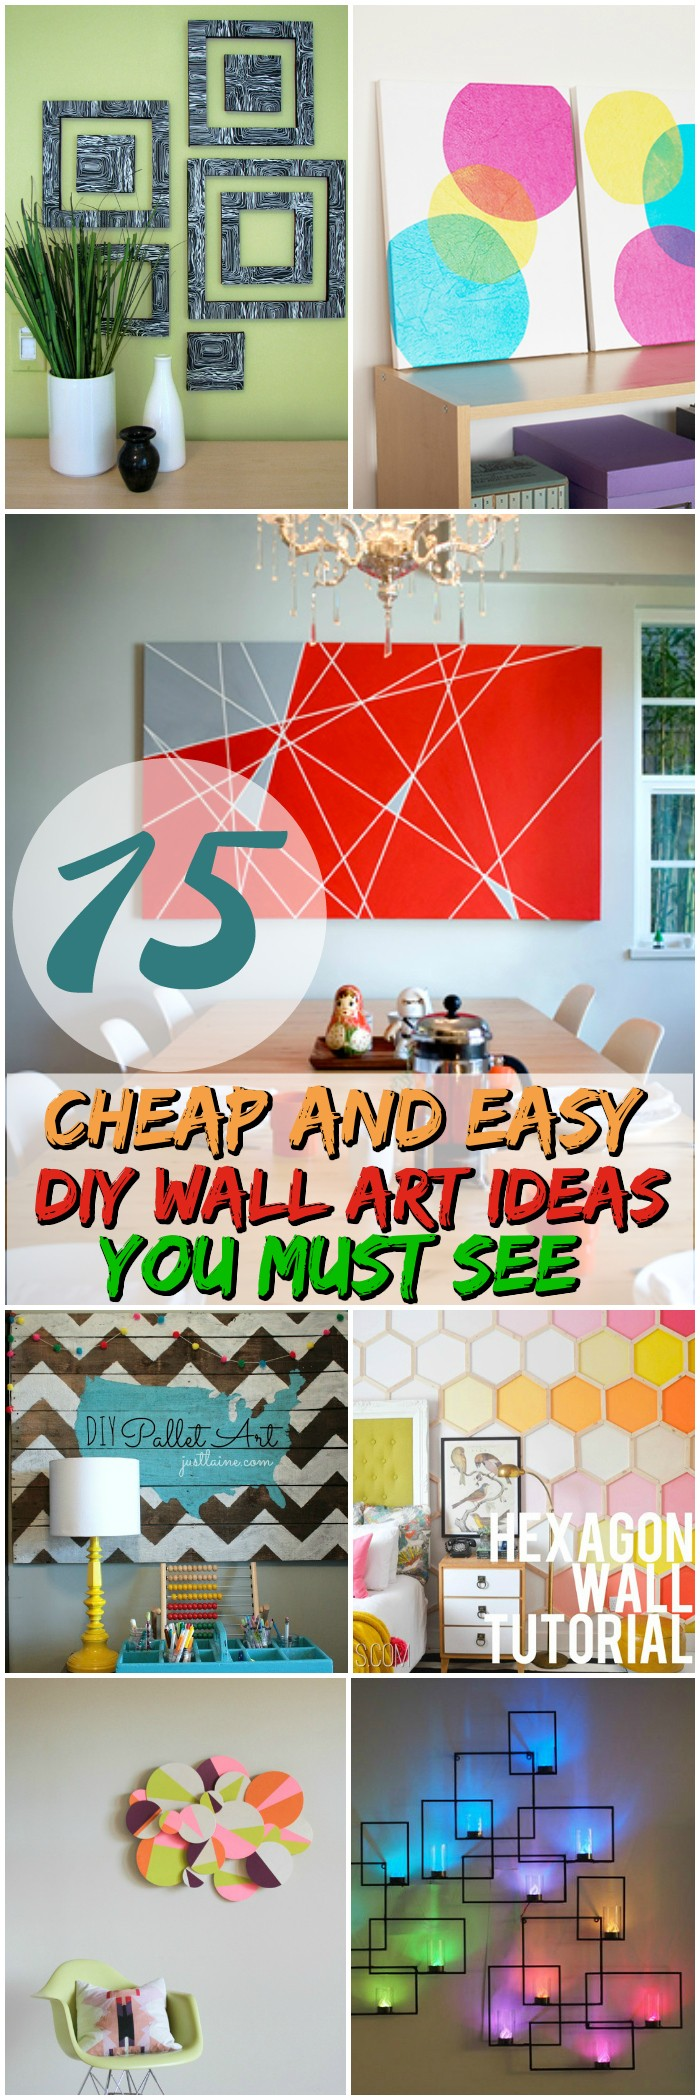 15 cheap and easy DIY wall art ideas you must see